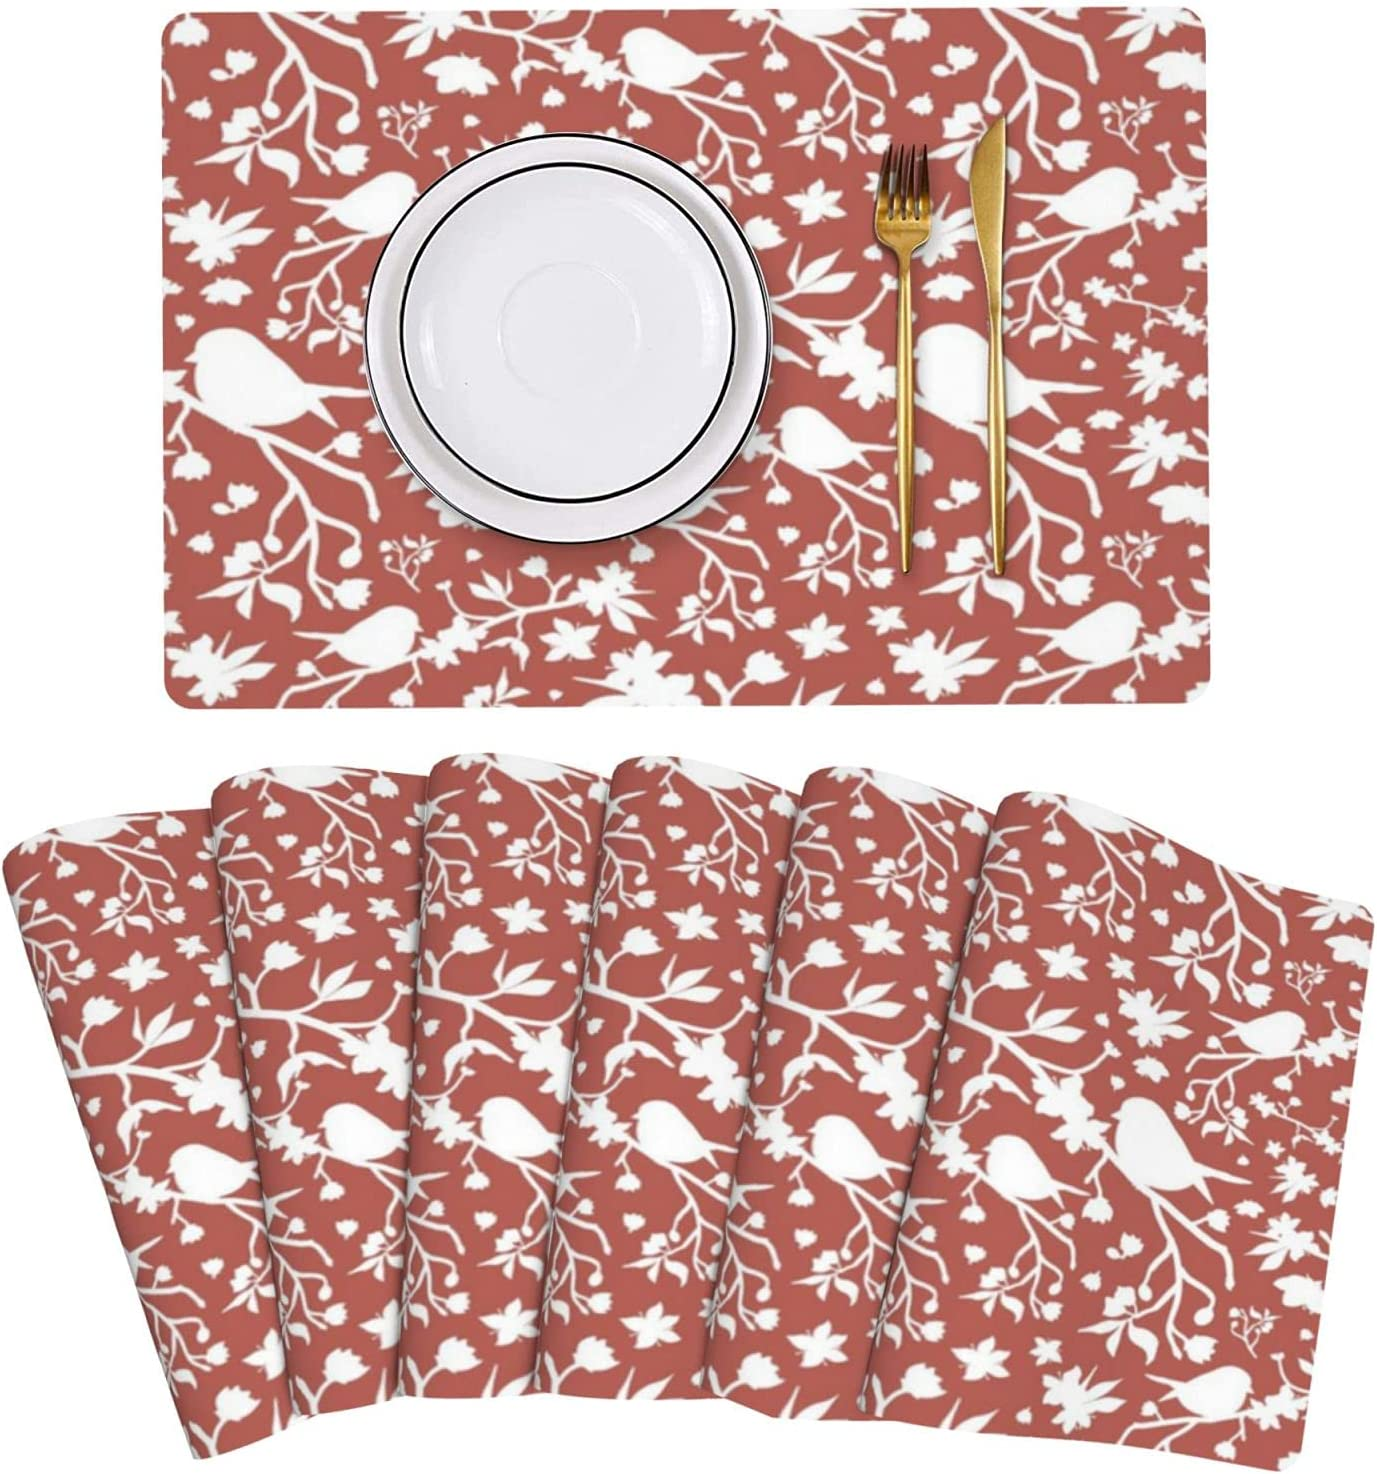 Spring Full San Jose Mall of Hope White On Set Placemats High order 6 Cinnamon Leather